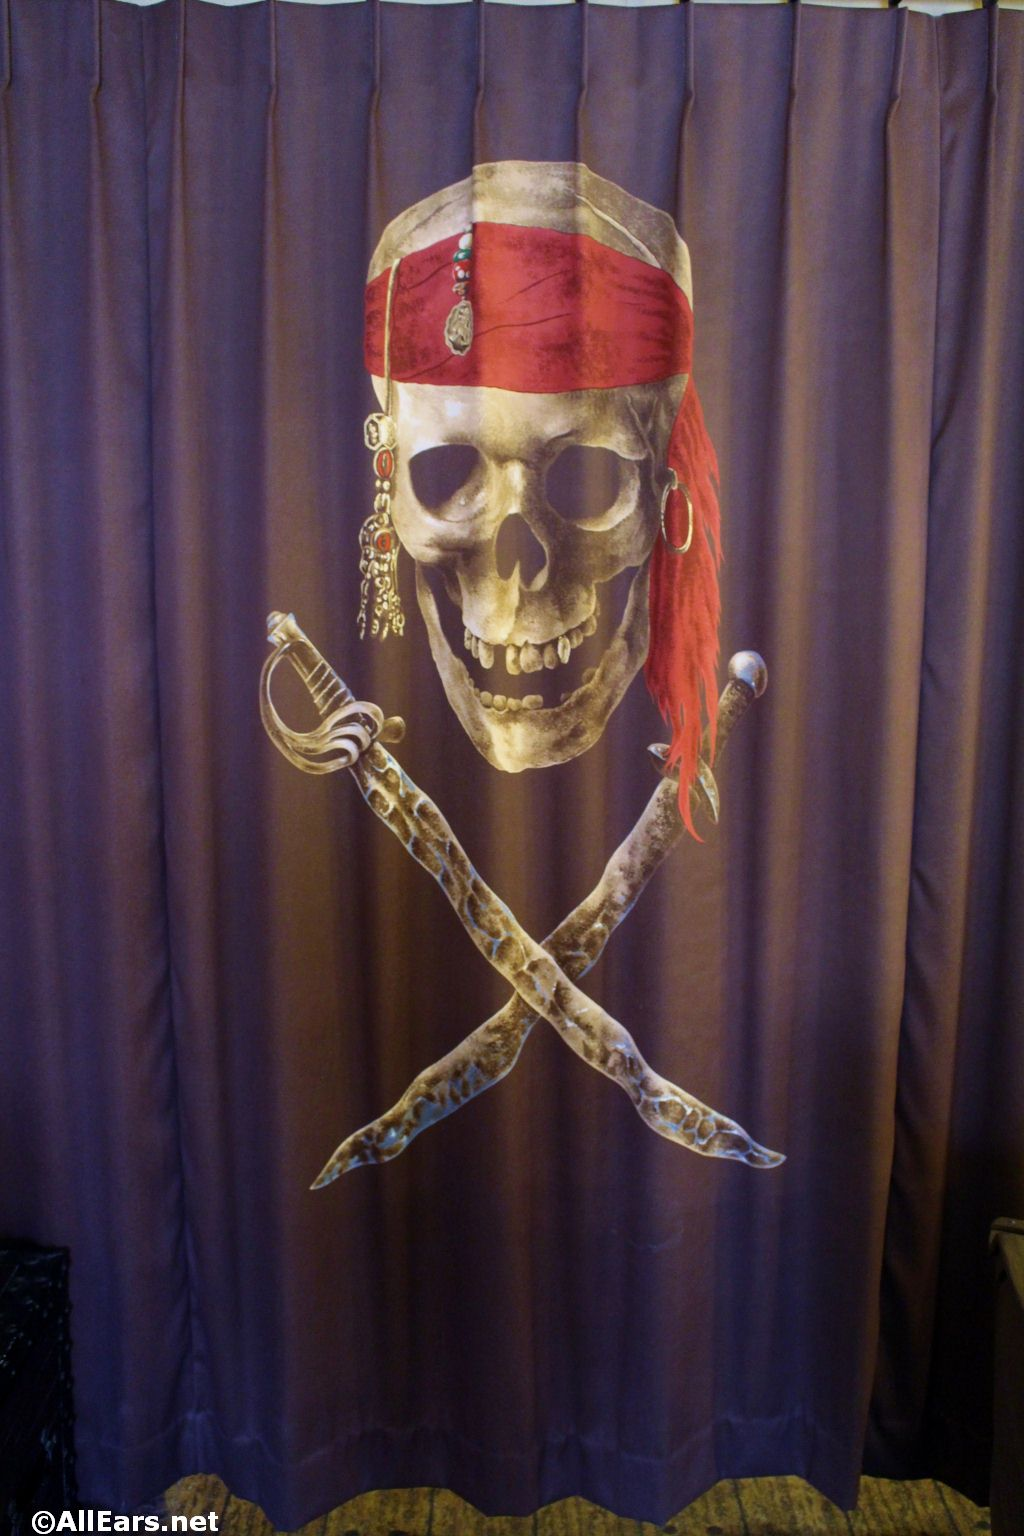 Caribbean Beach Pirate Room Photo Gallery